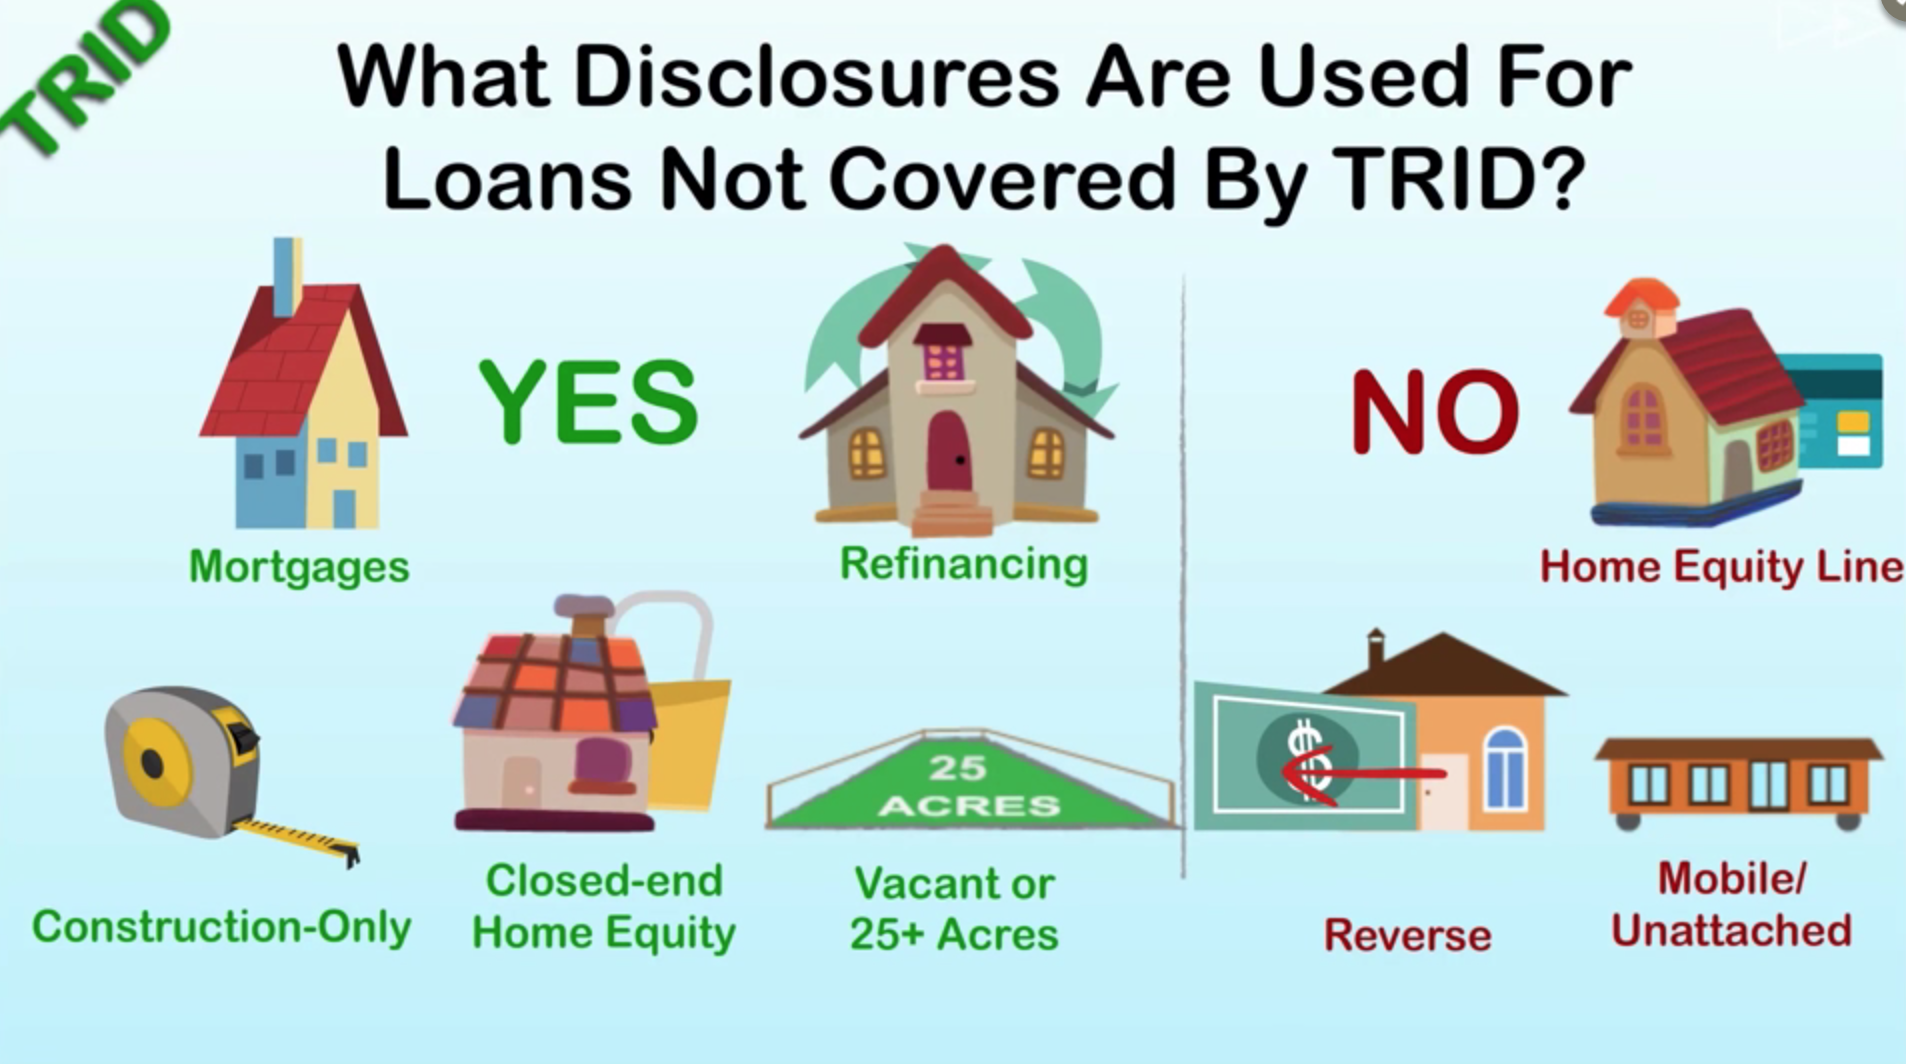 what disclosures are used for loans not covered by trid